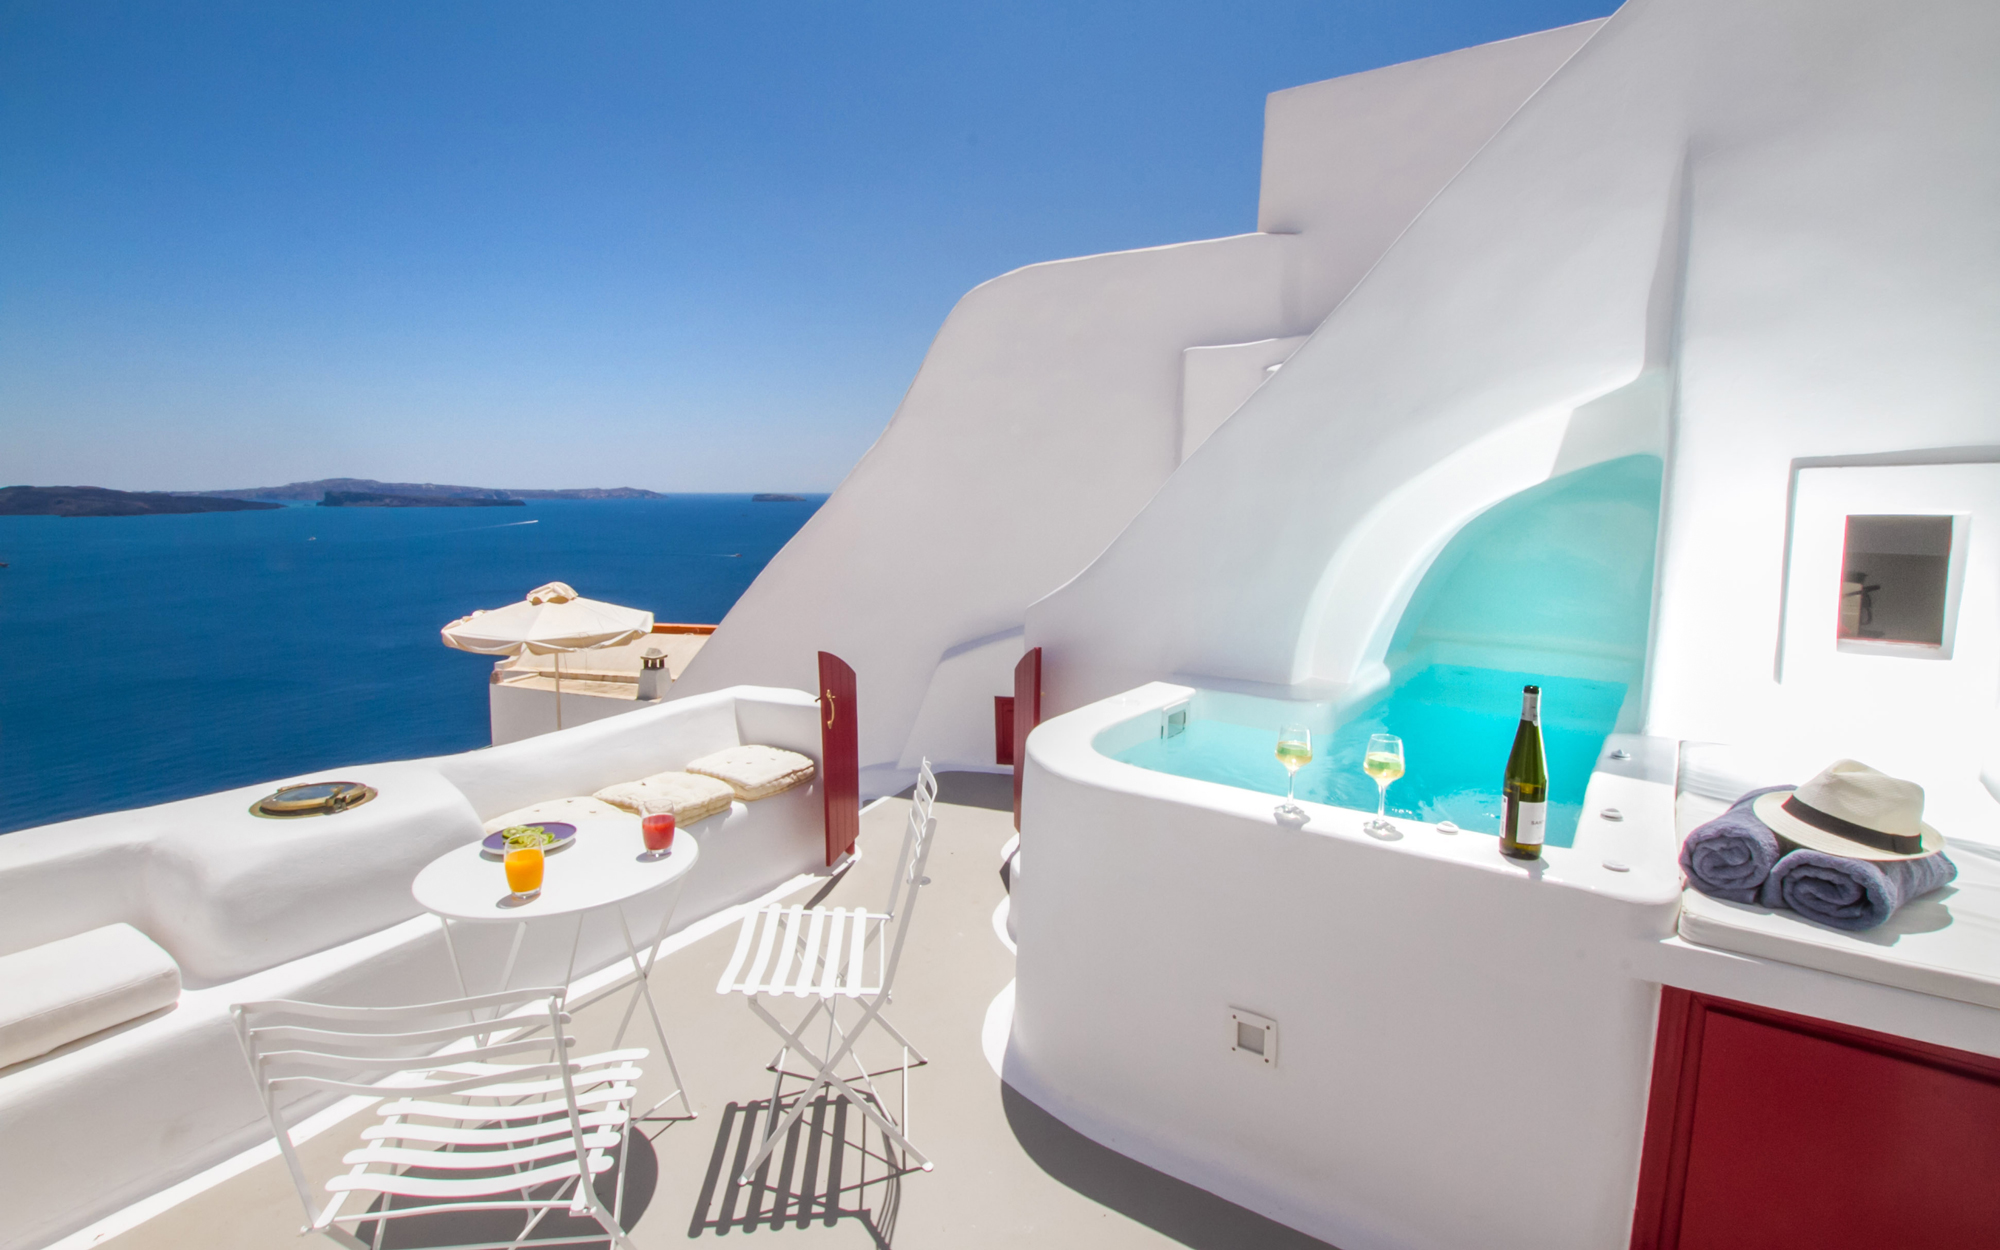 Airbnb Rentals With Jaw-Dropping Views